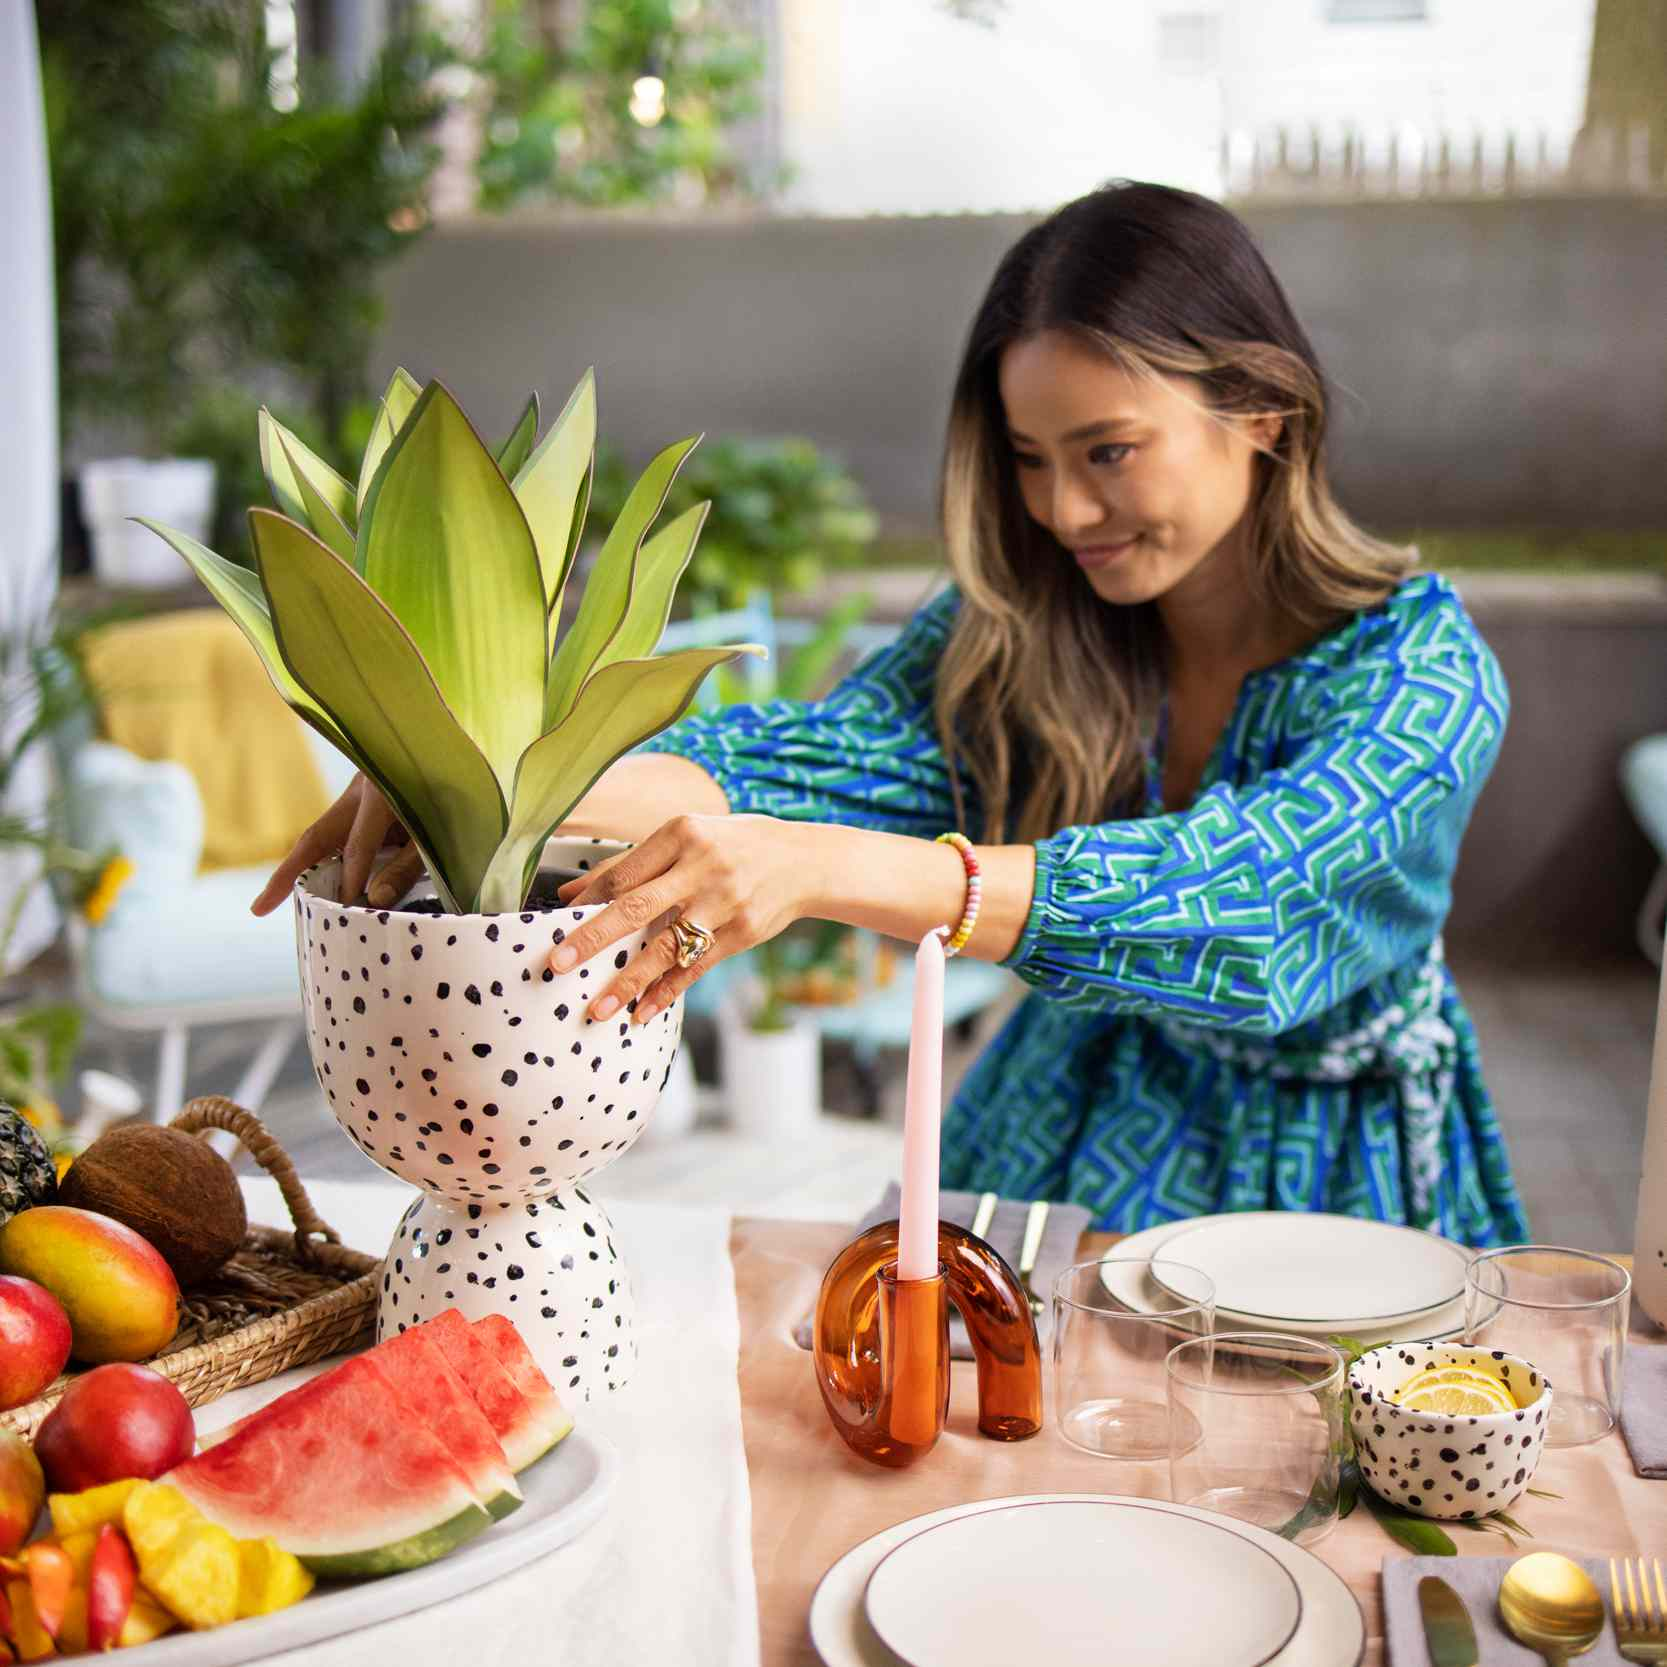 Jamie Chung arranges a planter on her backyard dining table